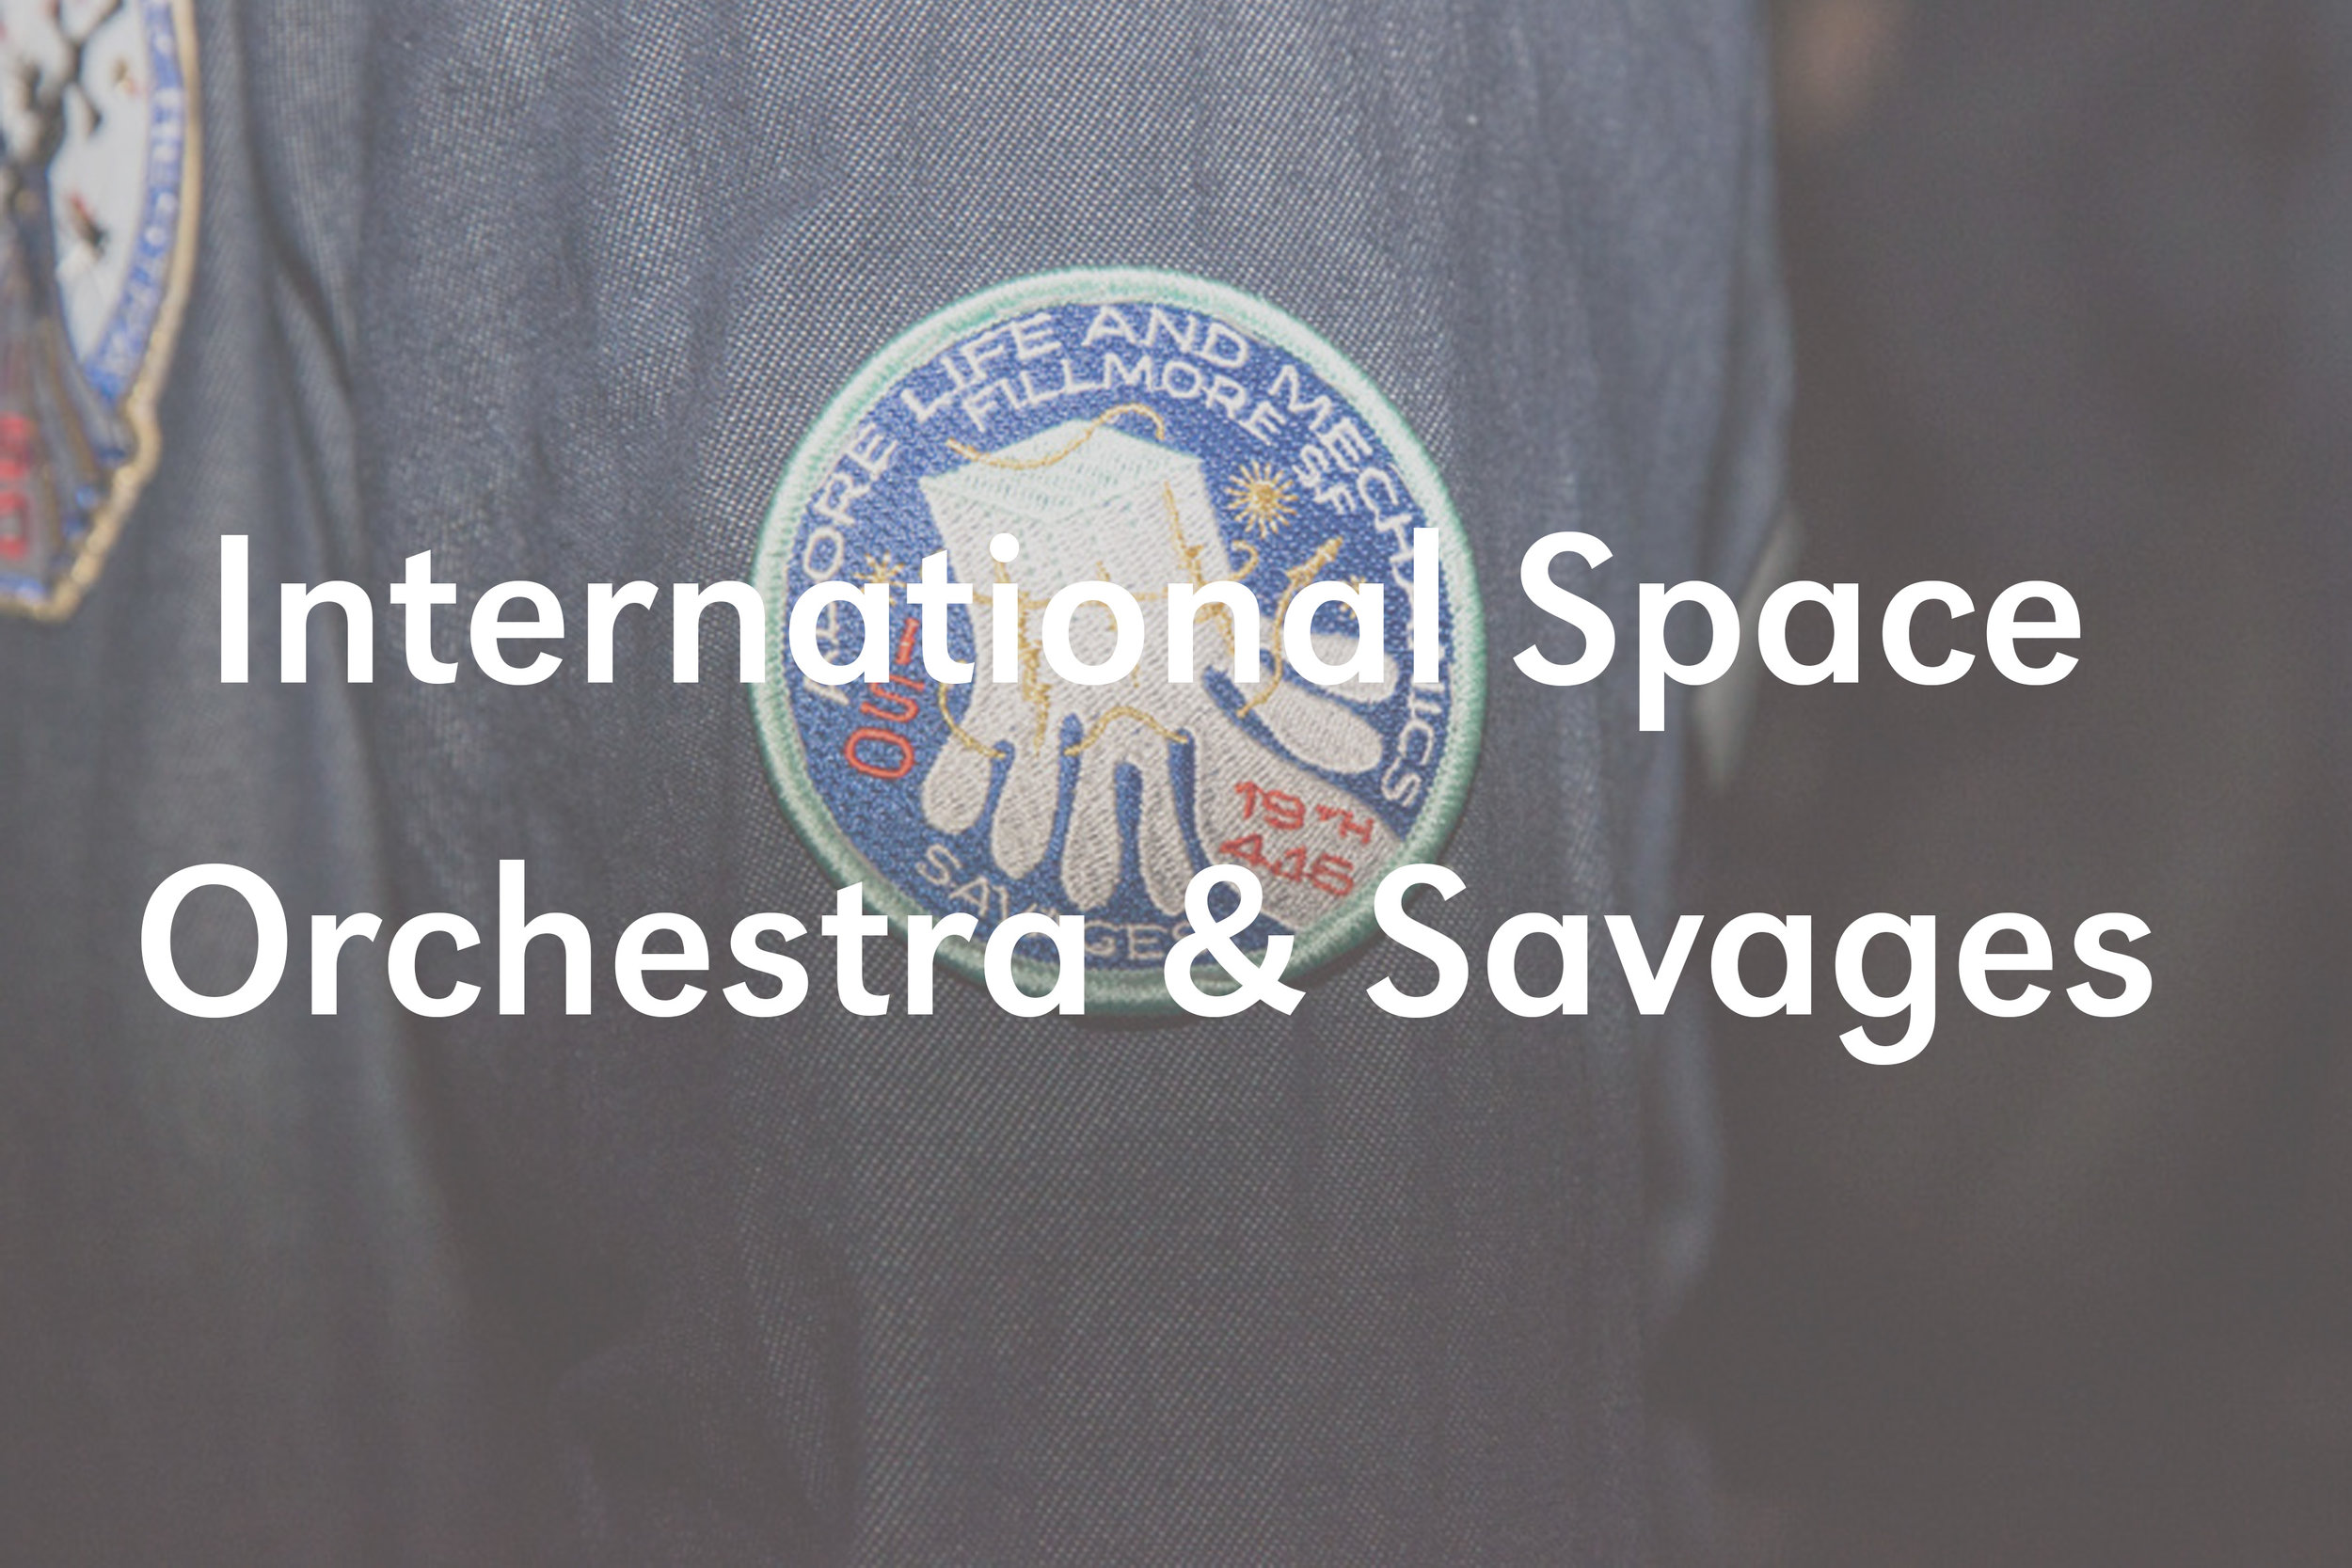 International Space Orchestra & Savages